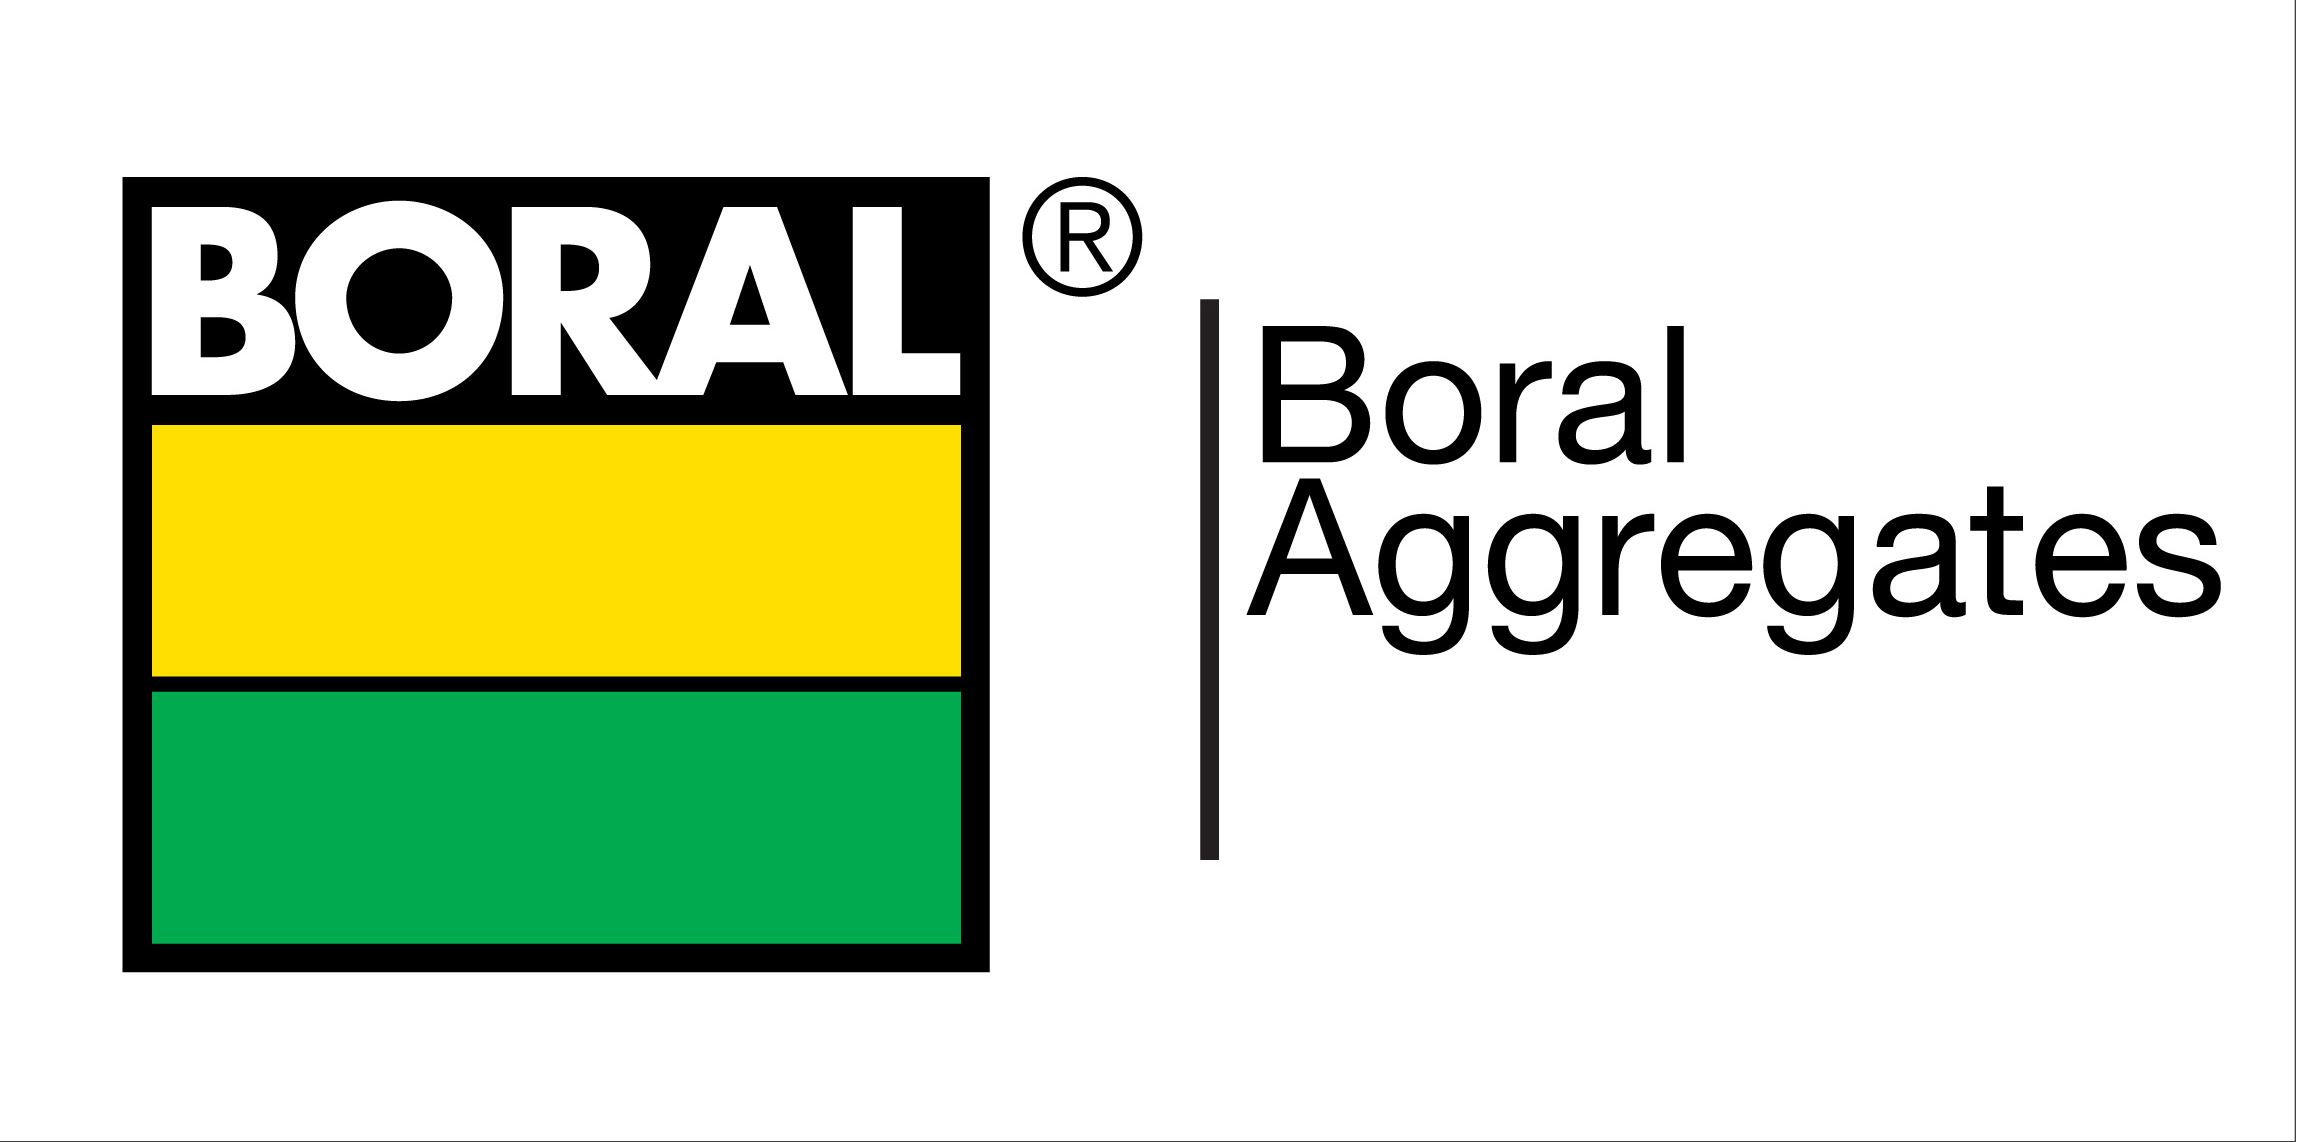 Boral Aggregates sign